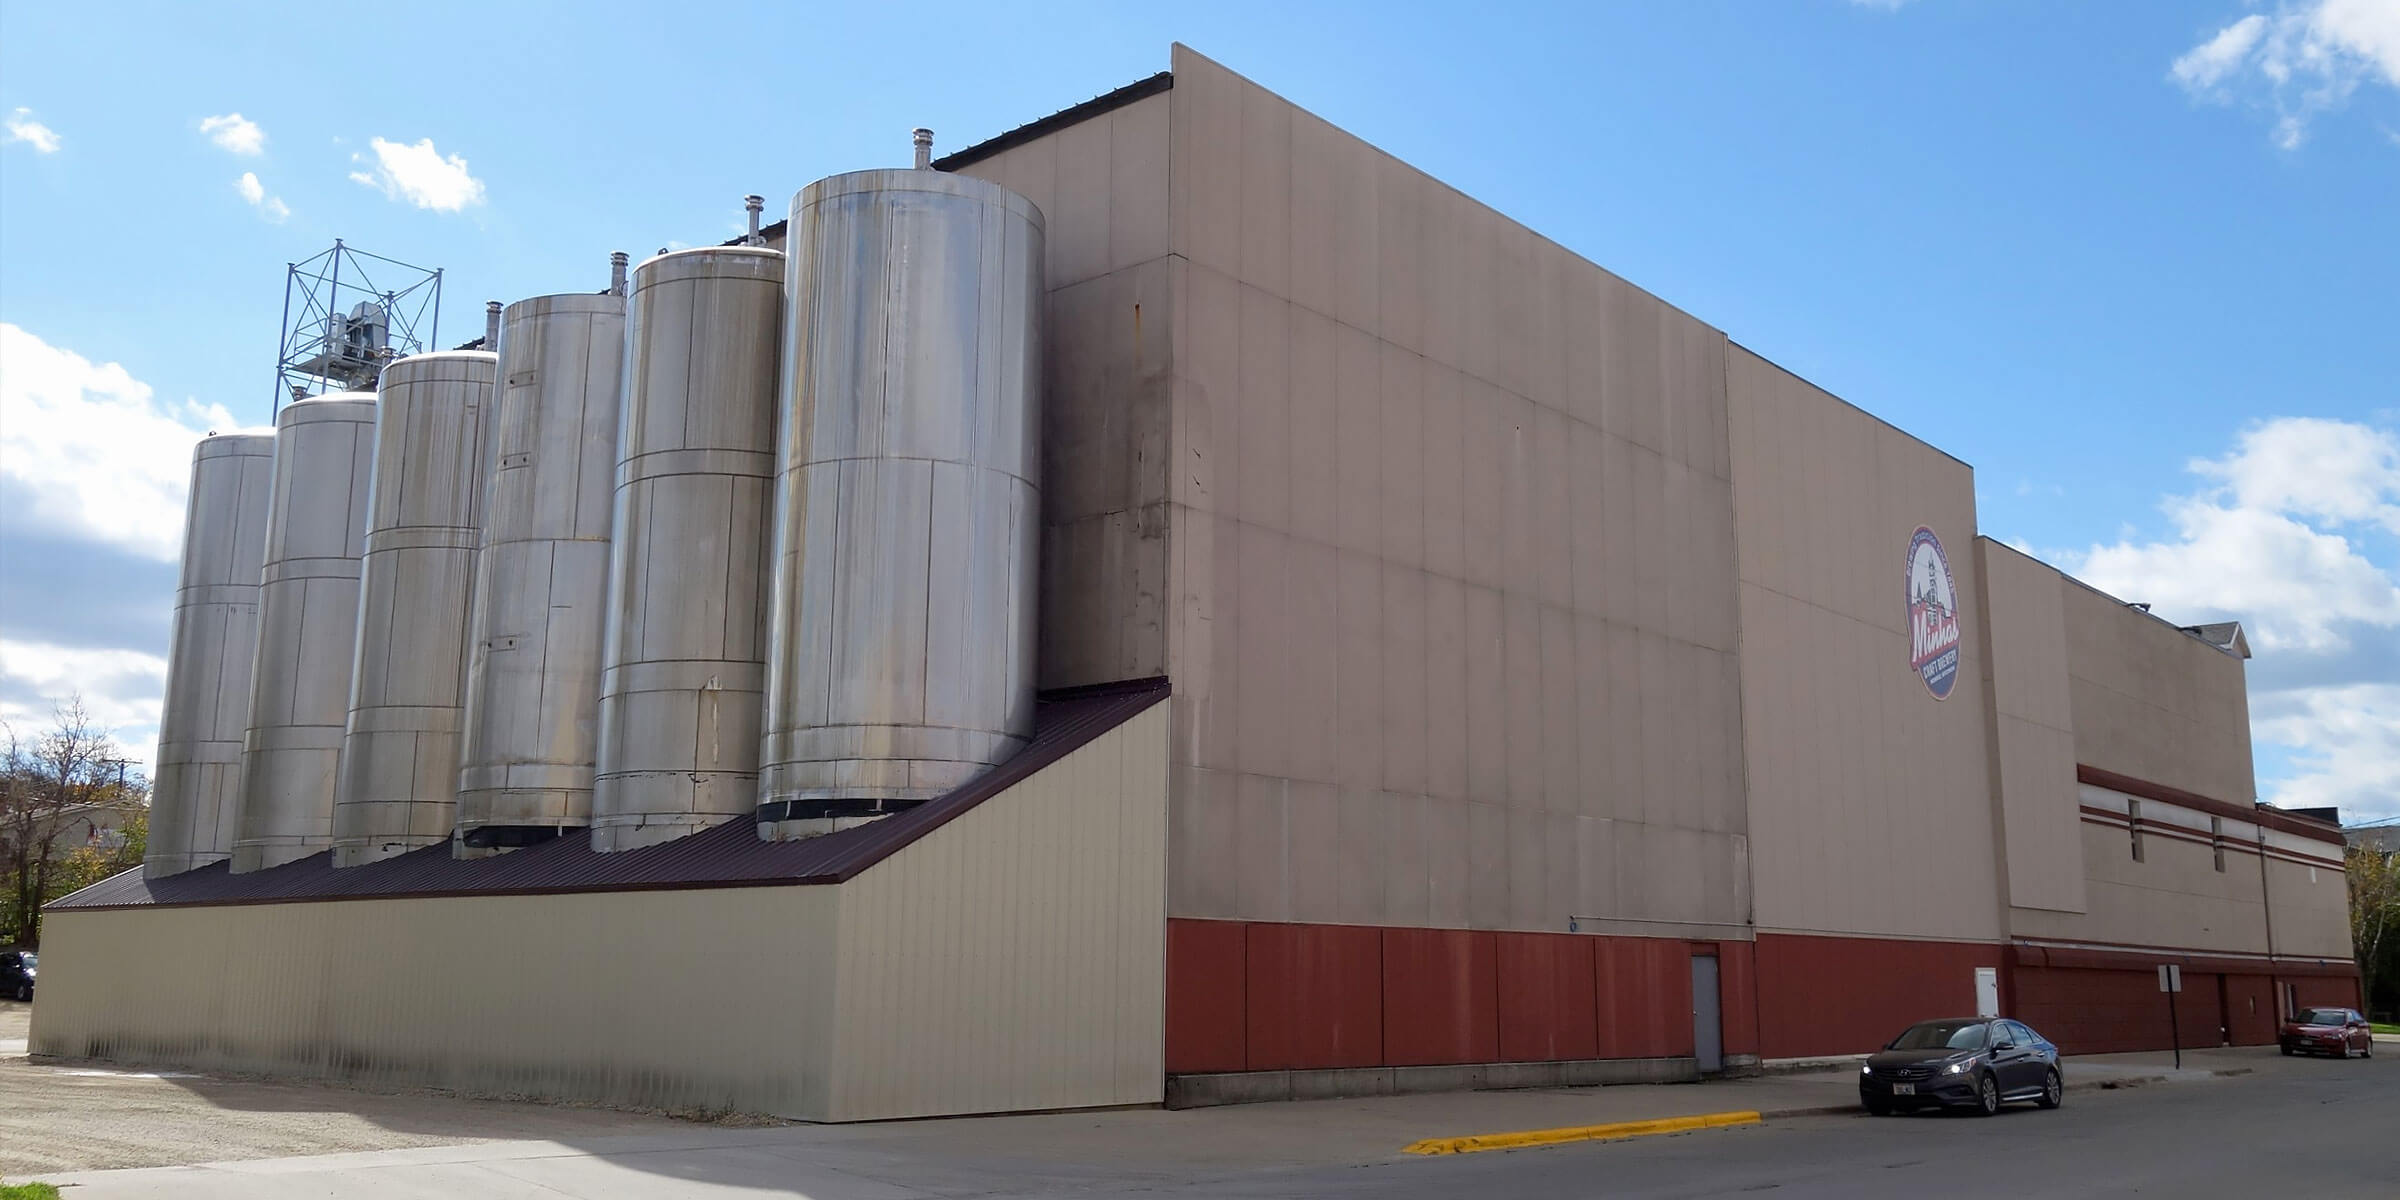 Outside the production facility at Minhas Craft Brewery in Monroe, Wisconsin